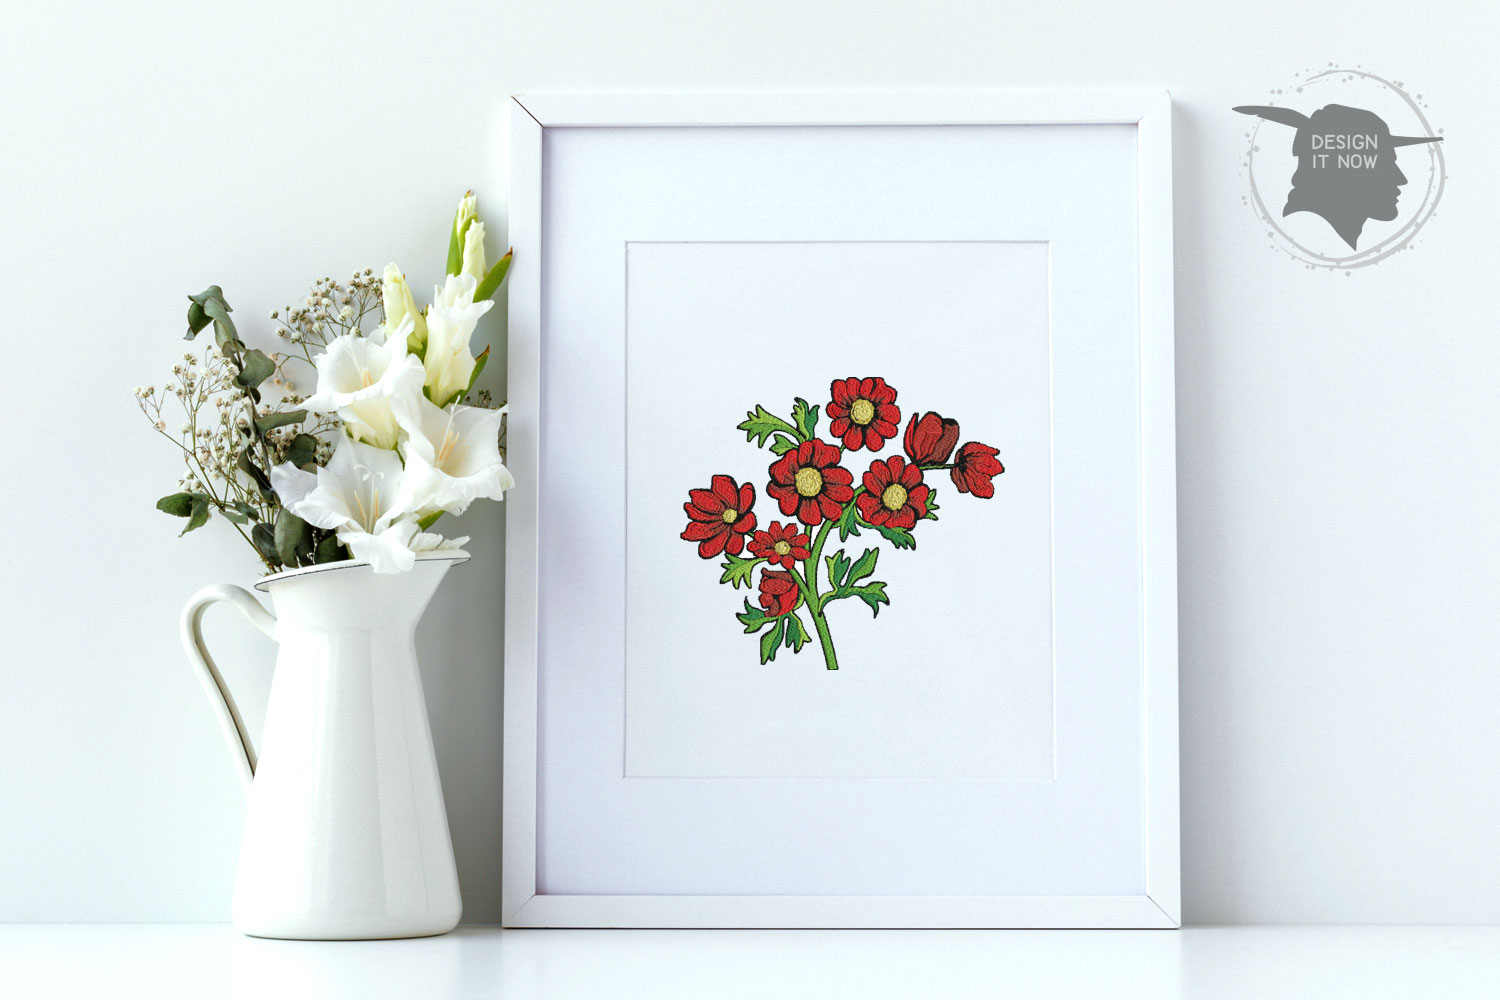 Botanical Art, Flower Embroidery Design, Plant Embroidery example image 4